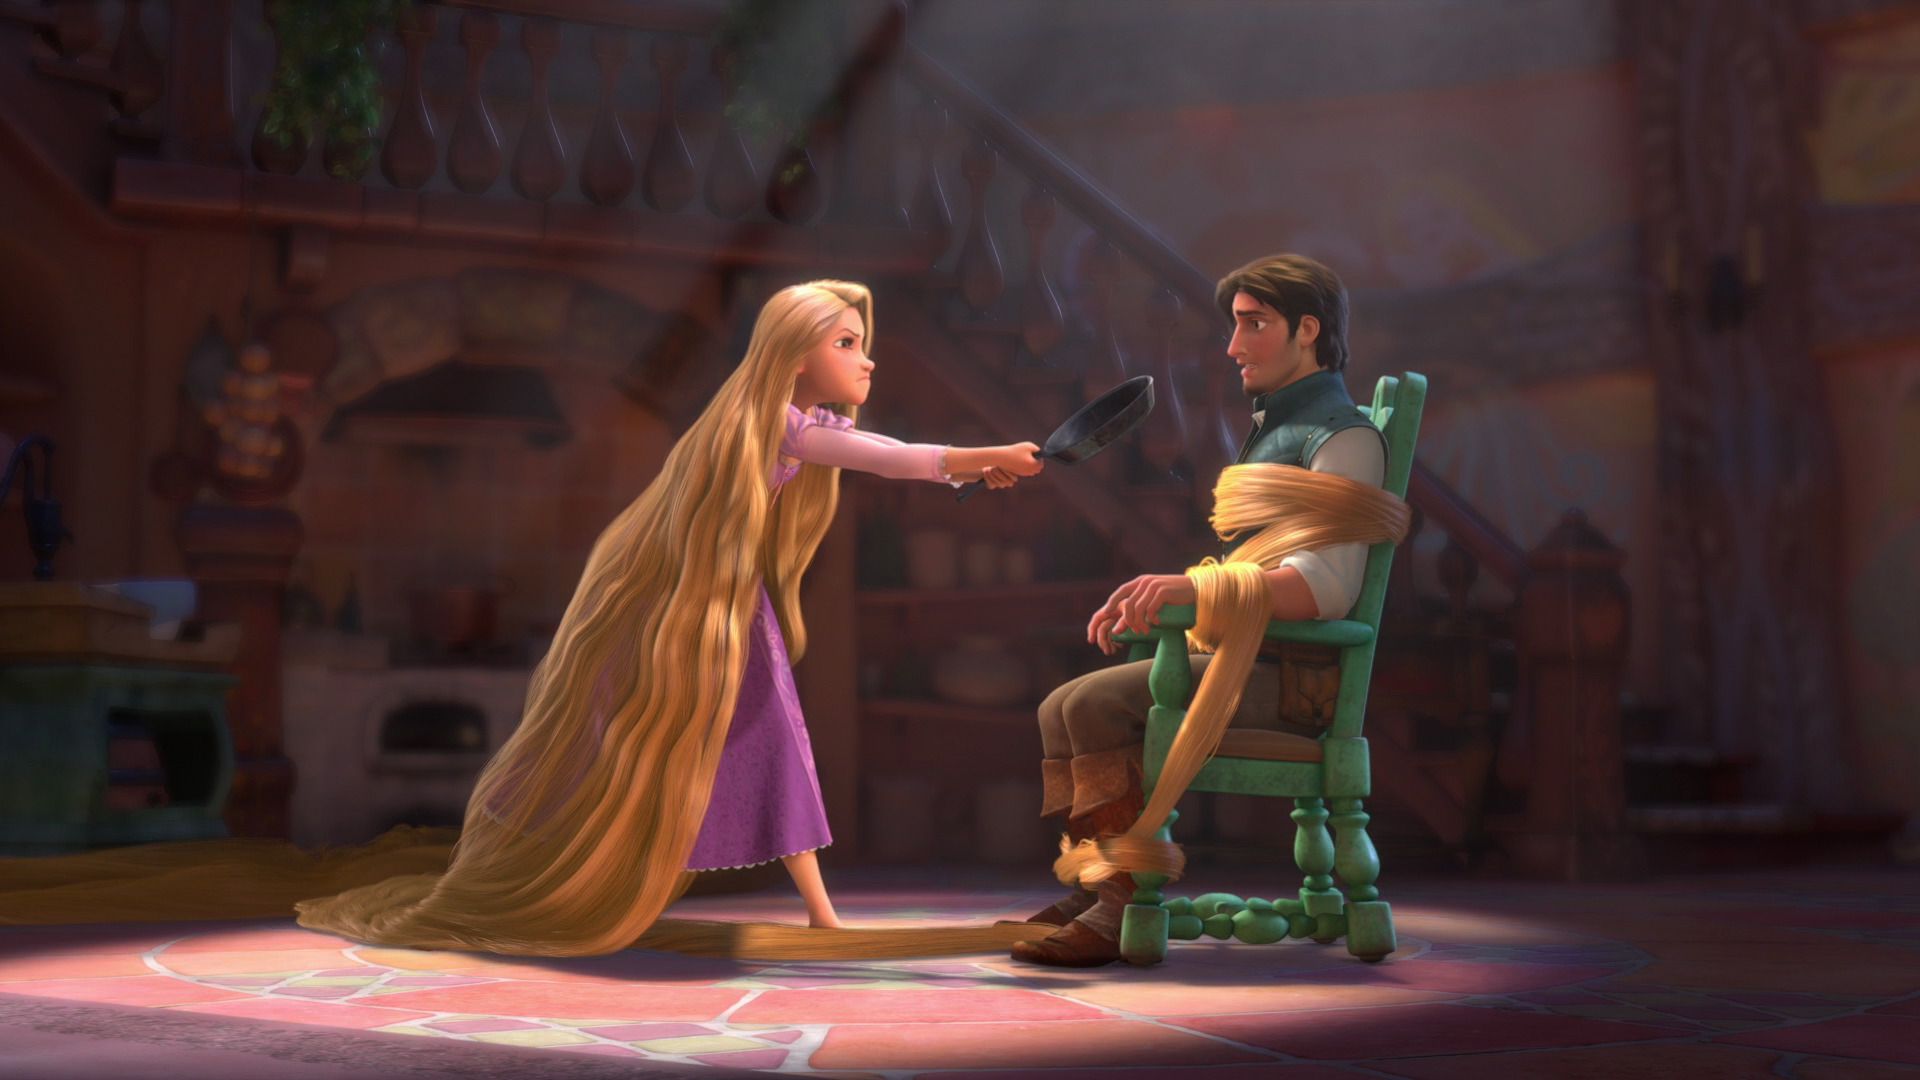 Tangled vs. Frozen: Which Is The Better Movie? | Rotoscopers